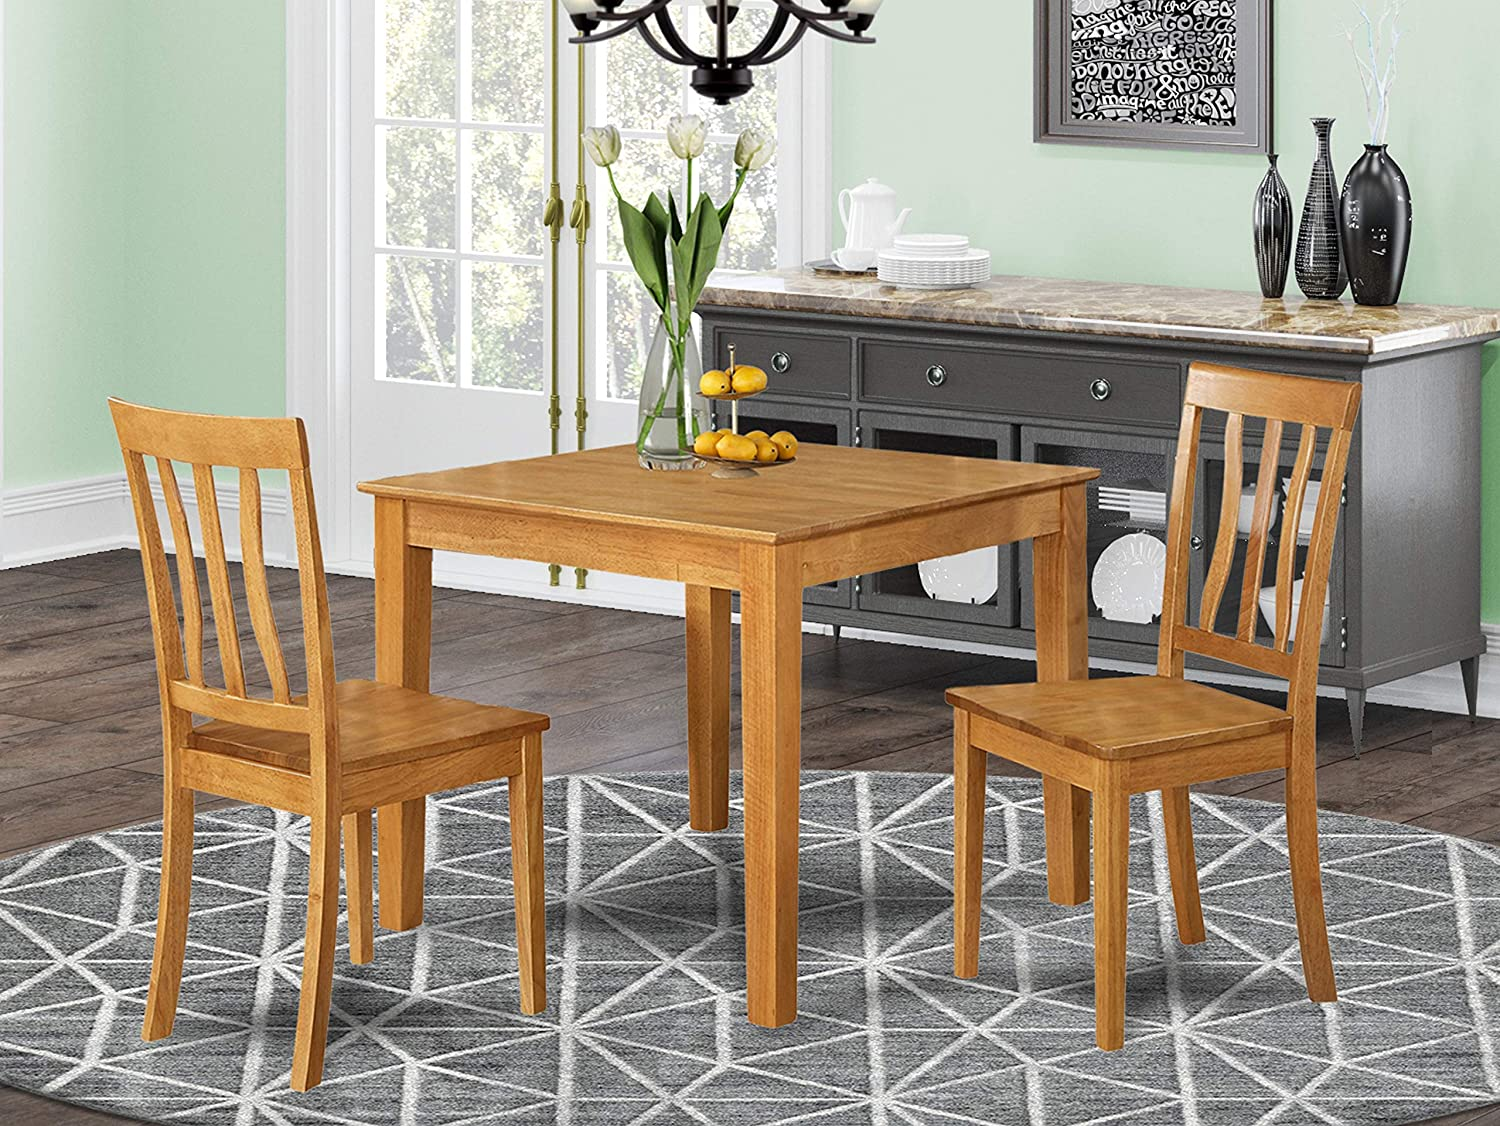 Amazon Com 3 Pc Small Kitchen Table And Chairs Set Square Kitchen Table And 2 Dining Chairs Furniture Decor